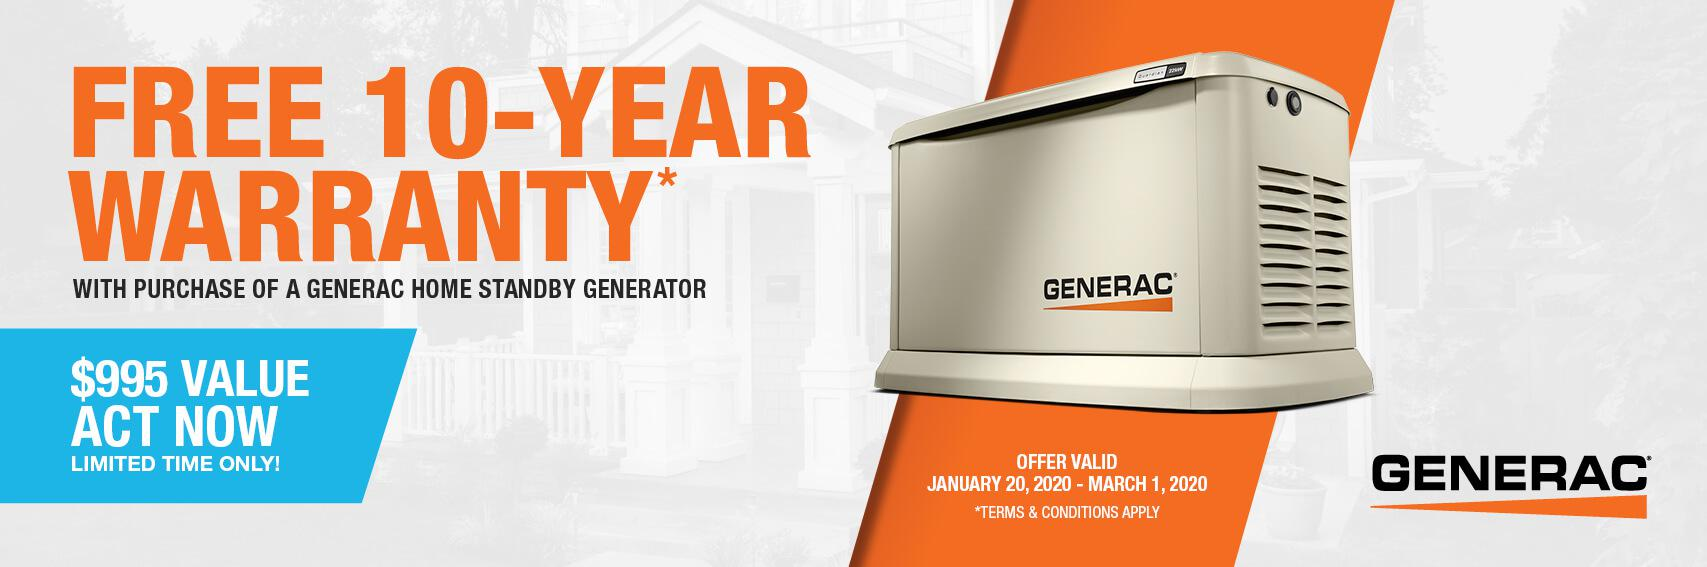 Homestandby Generator Deal | Warranty Offer | Generac Dealer | East Longmeadow, MA